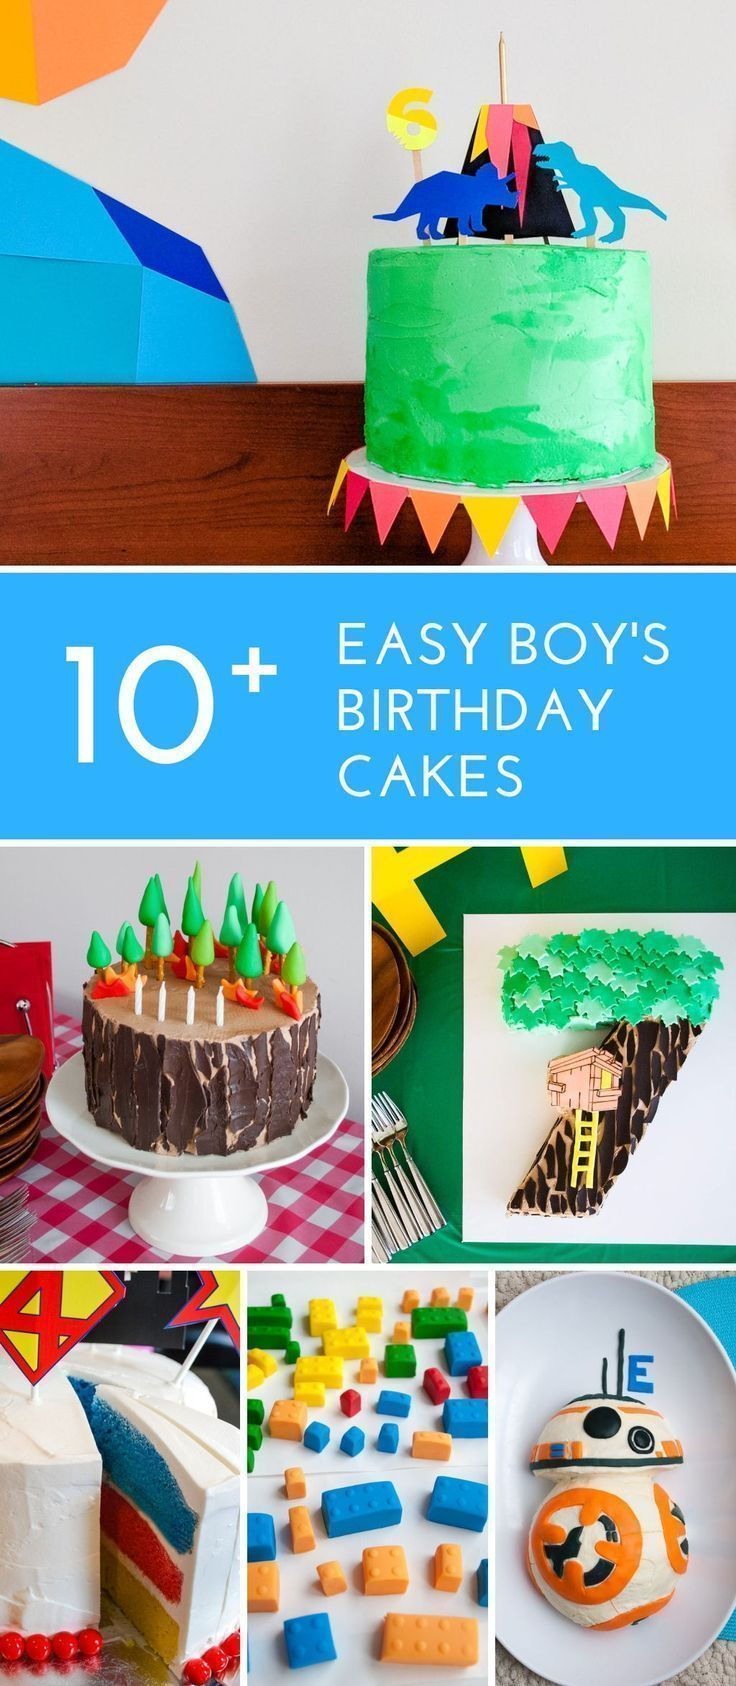 Easy Boys Birthday Cakes See These Simple Diy Boy Cake Ideas For Beginner Decorators Includes Age